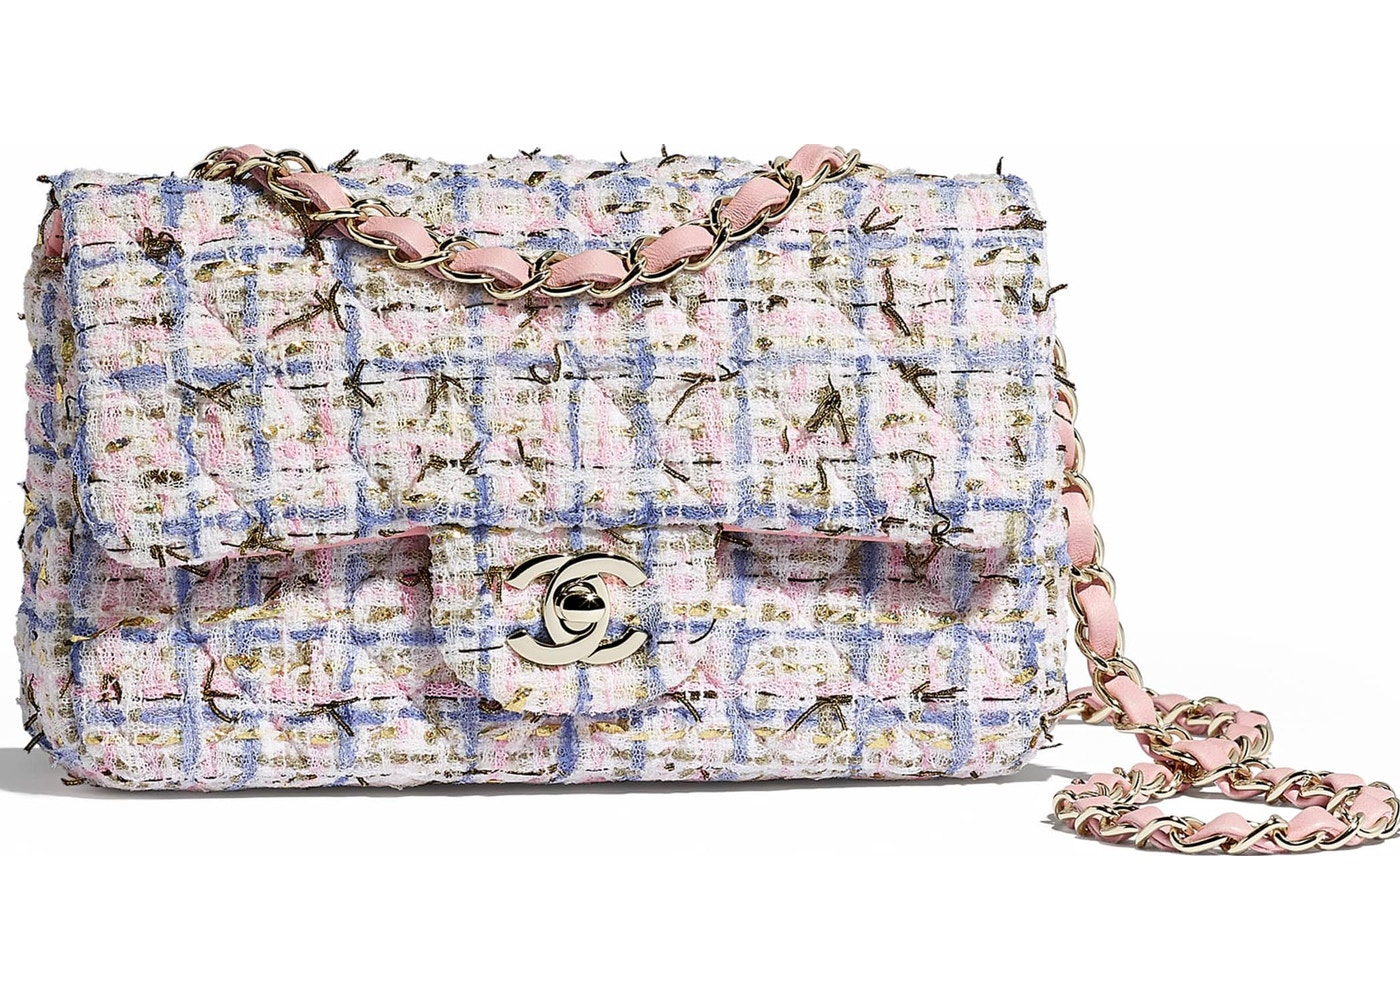 ca6534186e80 Chanel Flap Bag Tweed Gold-tone Mini Blue Pink